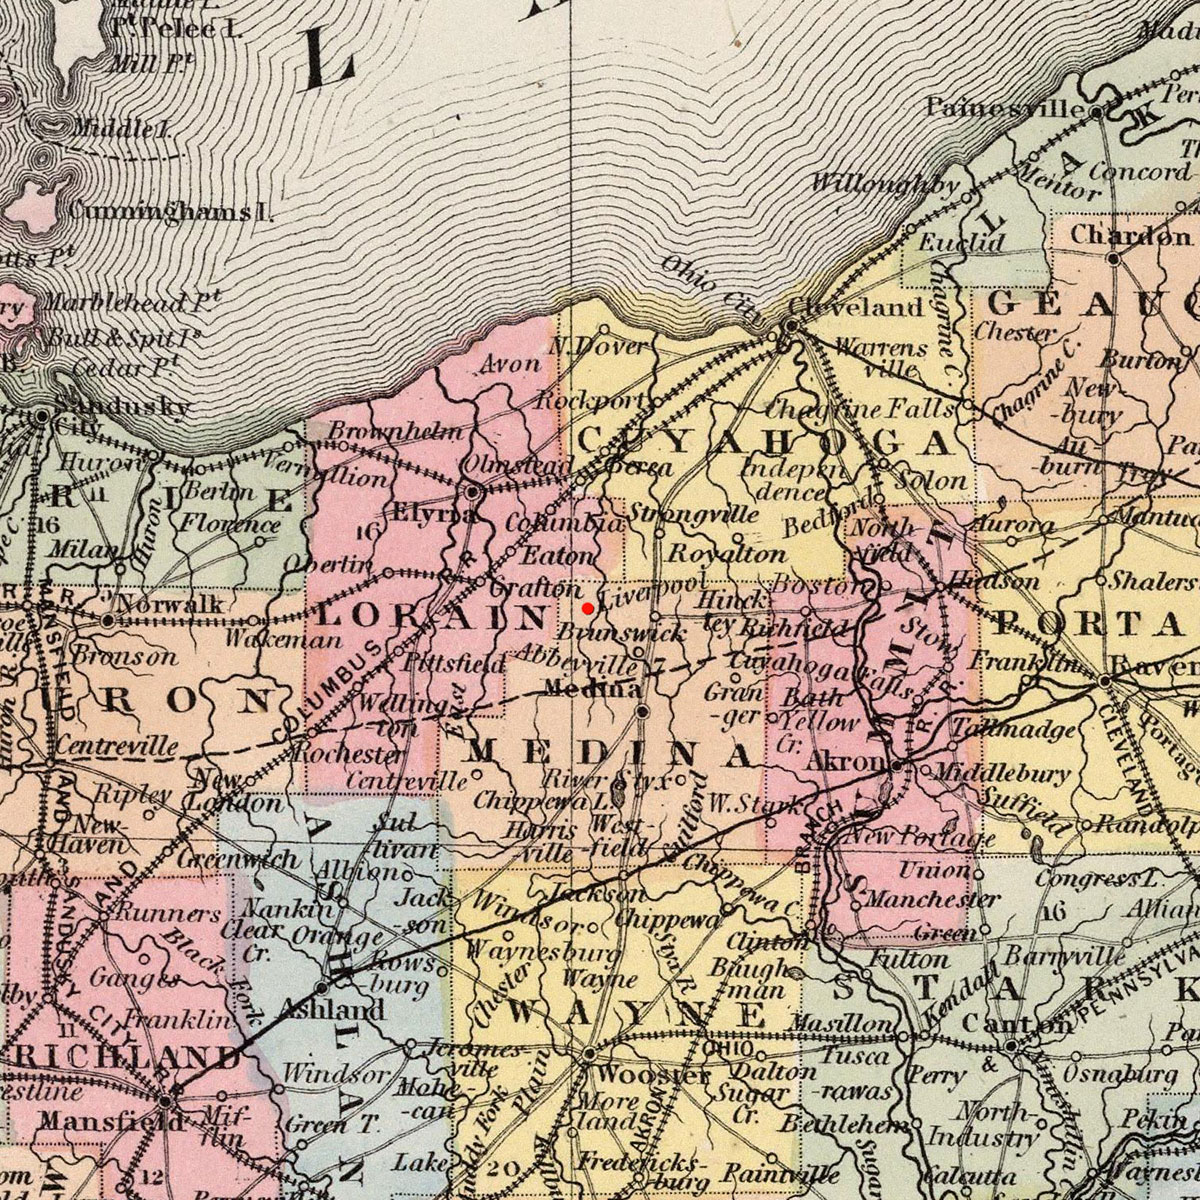 Liverpool Township, OH on 1860 map © 2000 Cartography Associates (DavidRumsey.com)